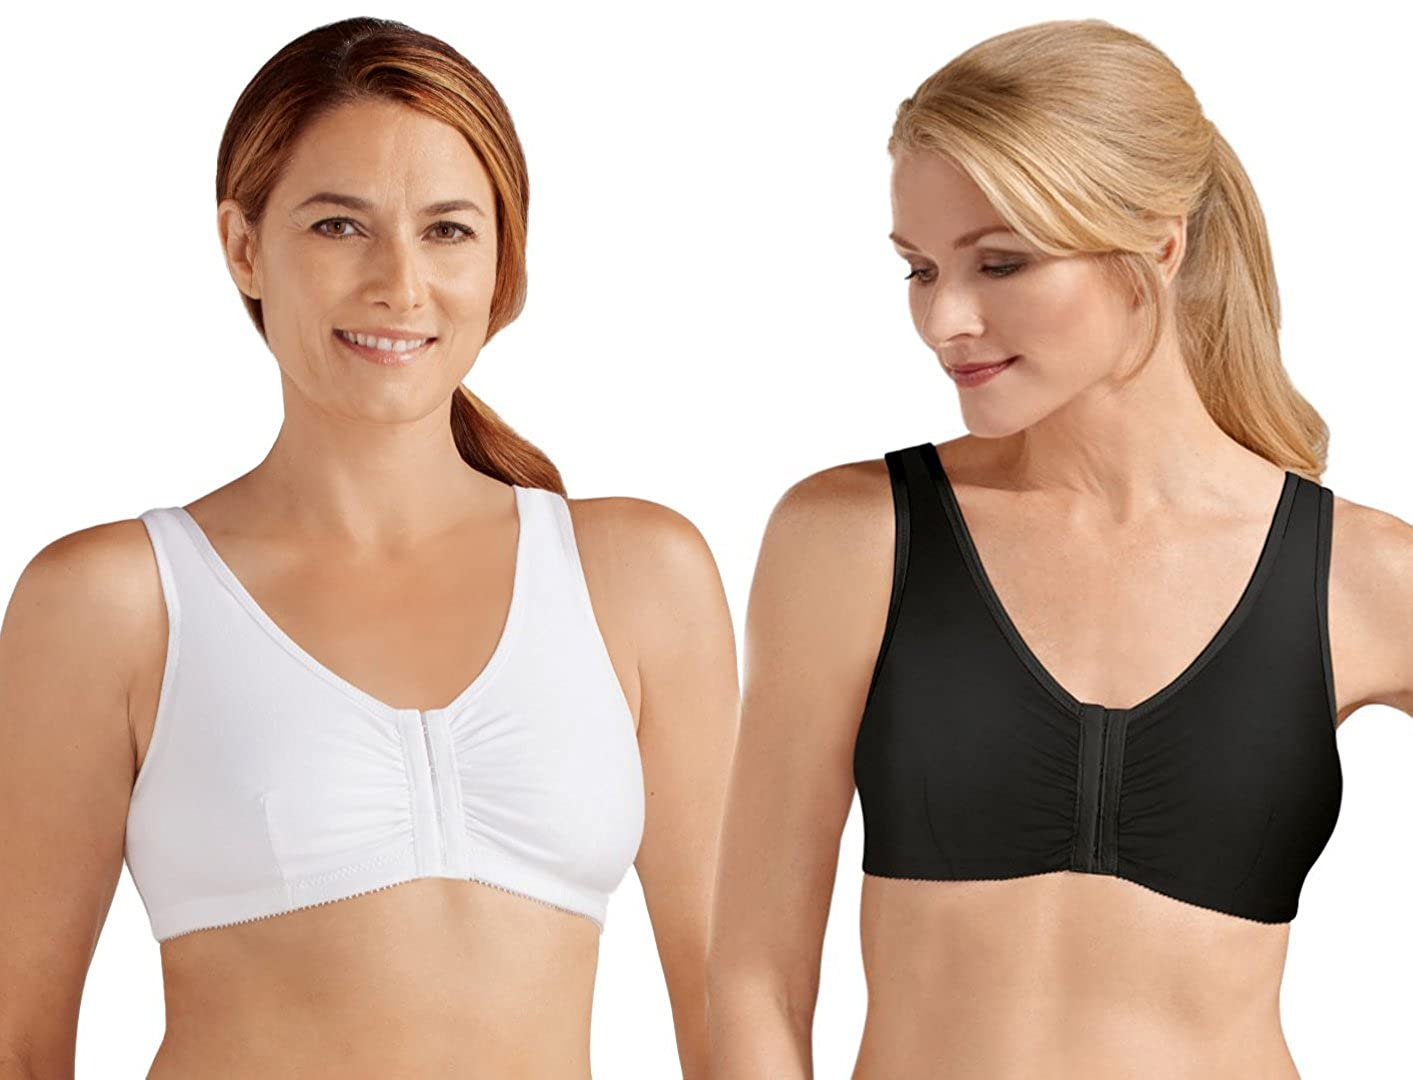 Amoena 'Frances' Front Fastening Post Surgical Bra - TWIN PACK - Black/White 2128-twin